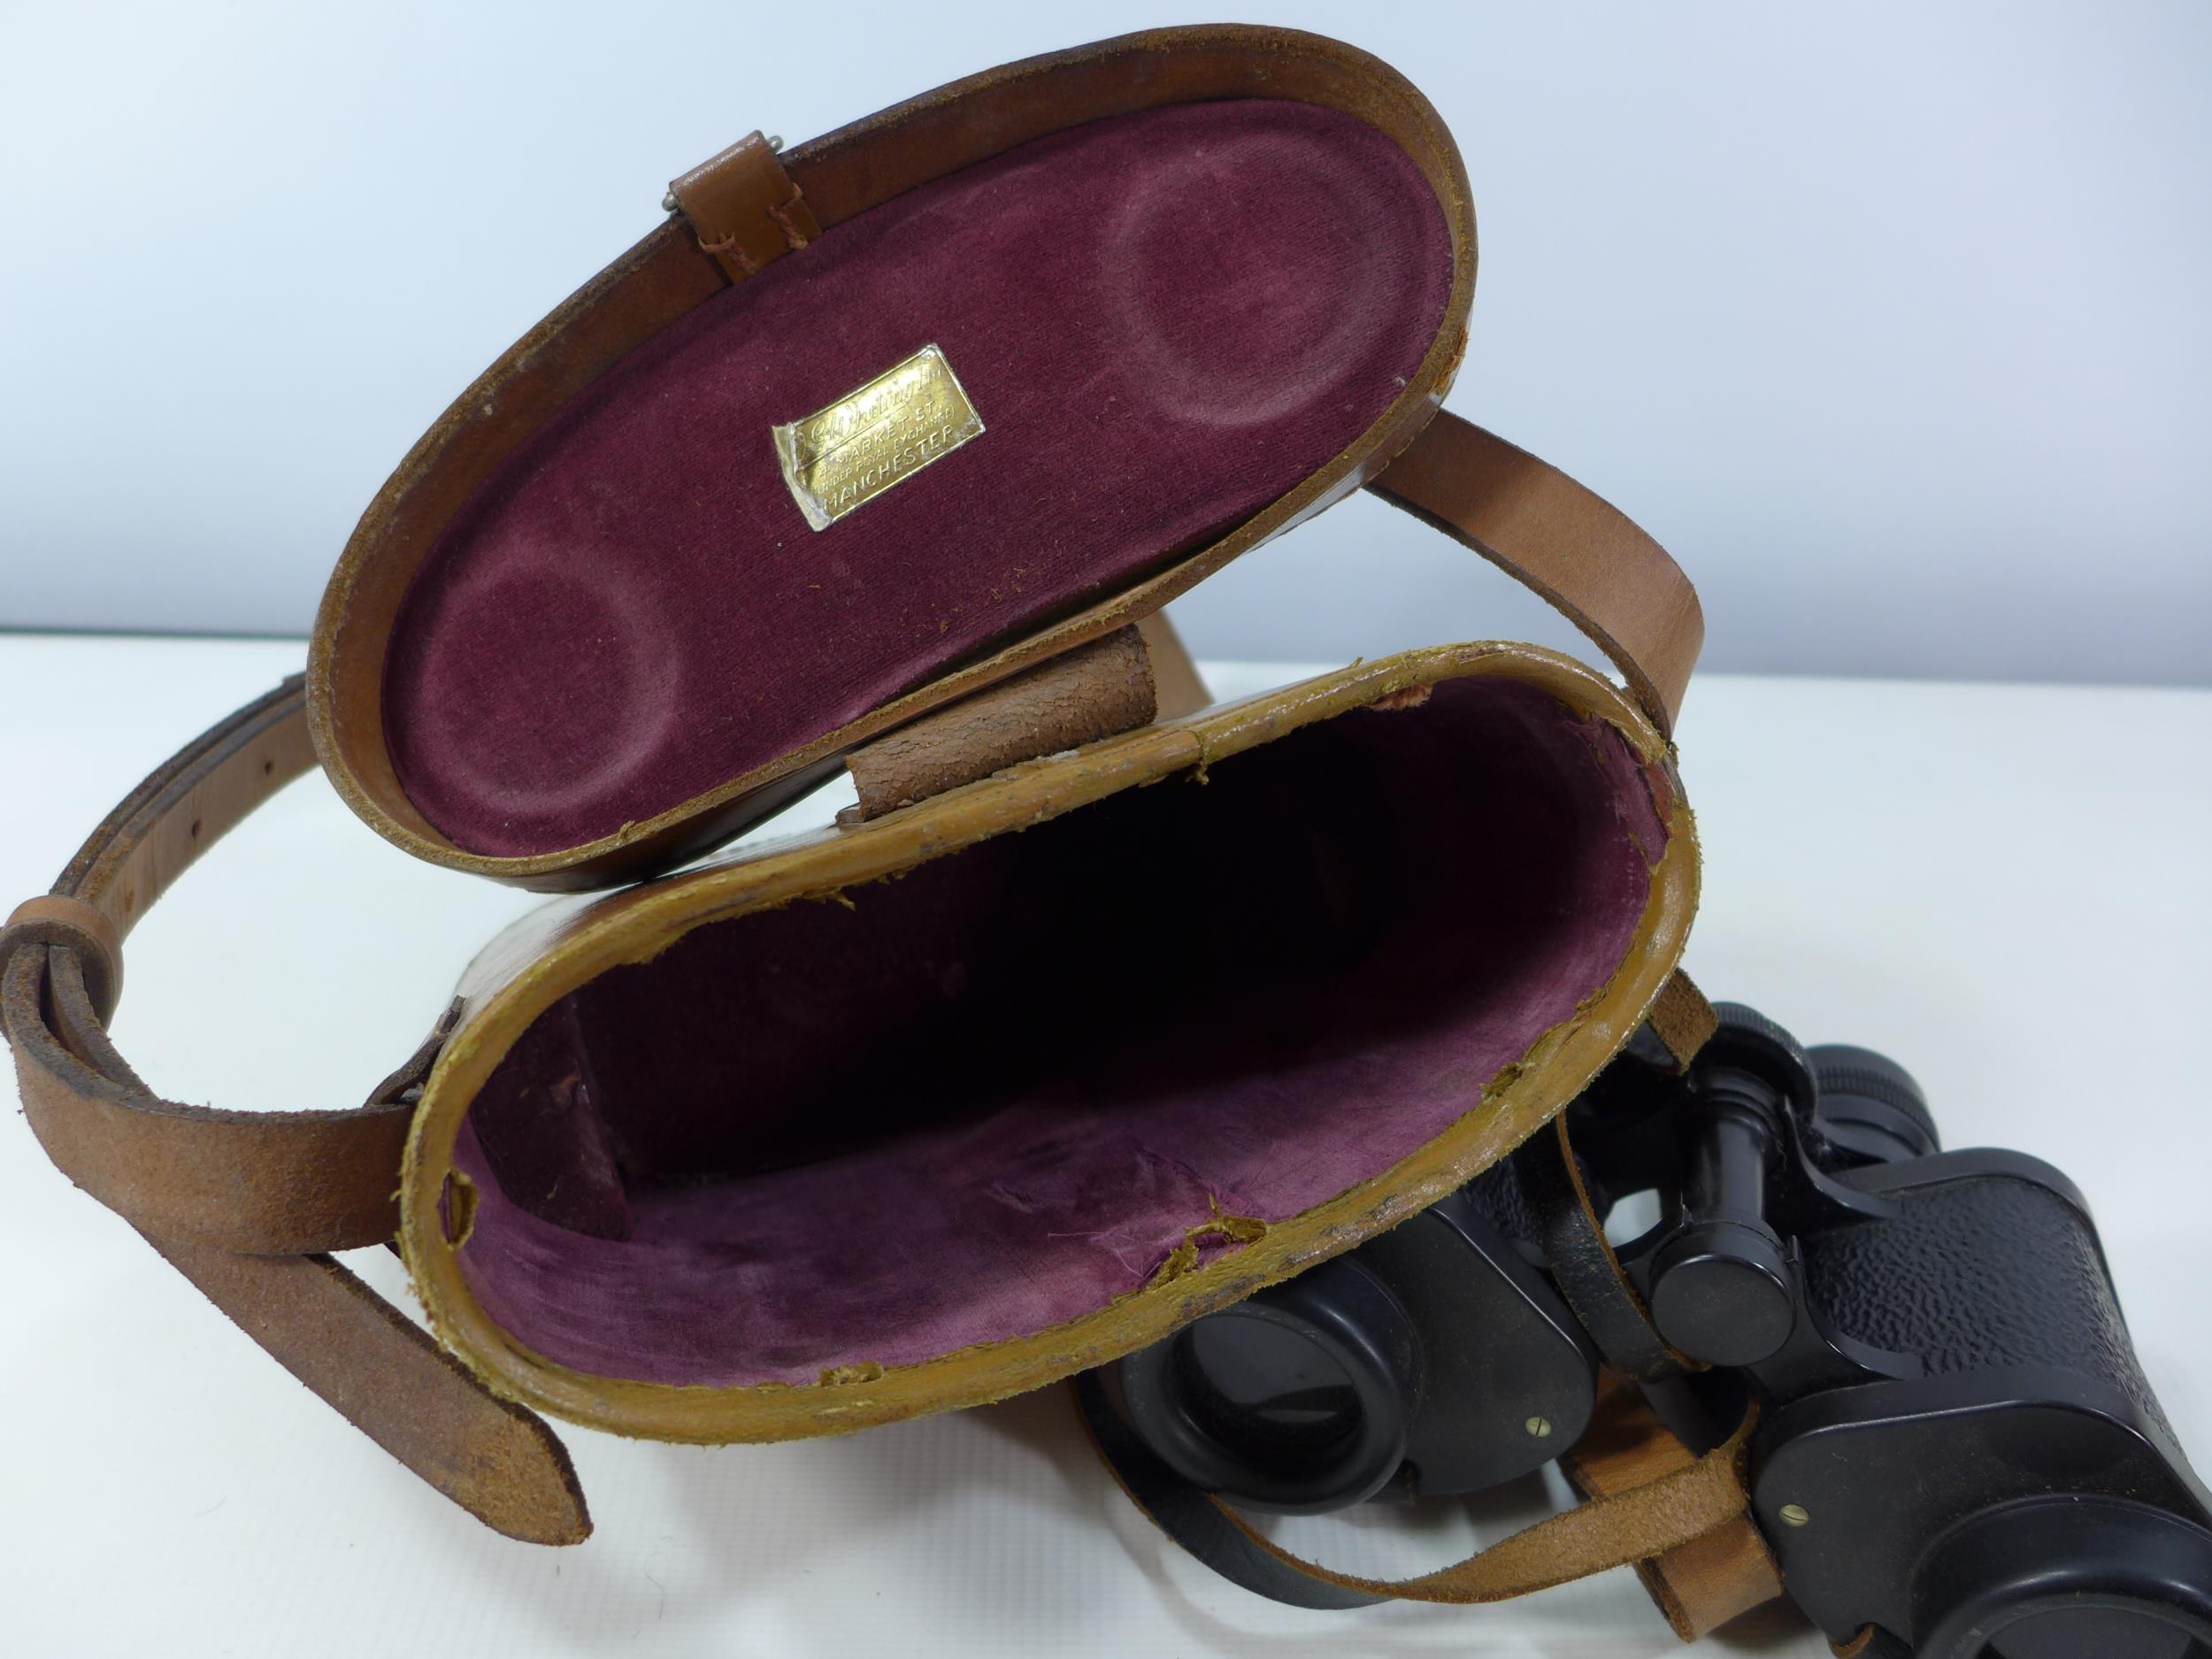 A PAIR OF BARR AND STROUD C.F.24 8X30 BINOCULARS AND LEATHER CASE - Image 4 of 4